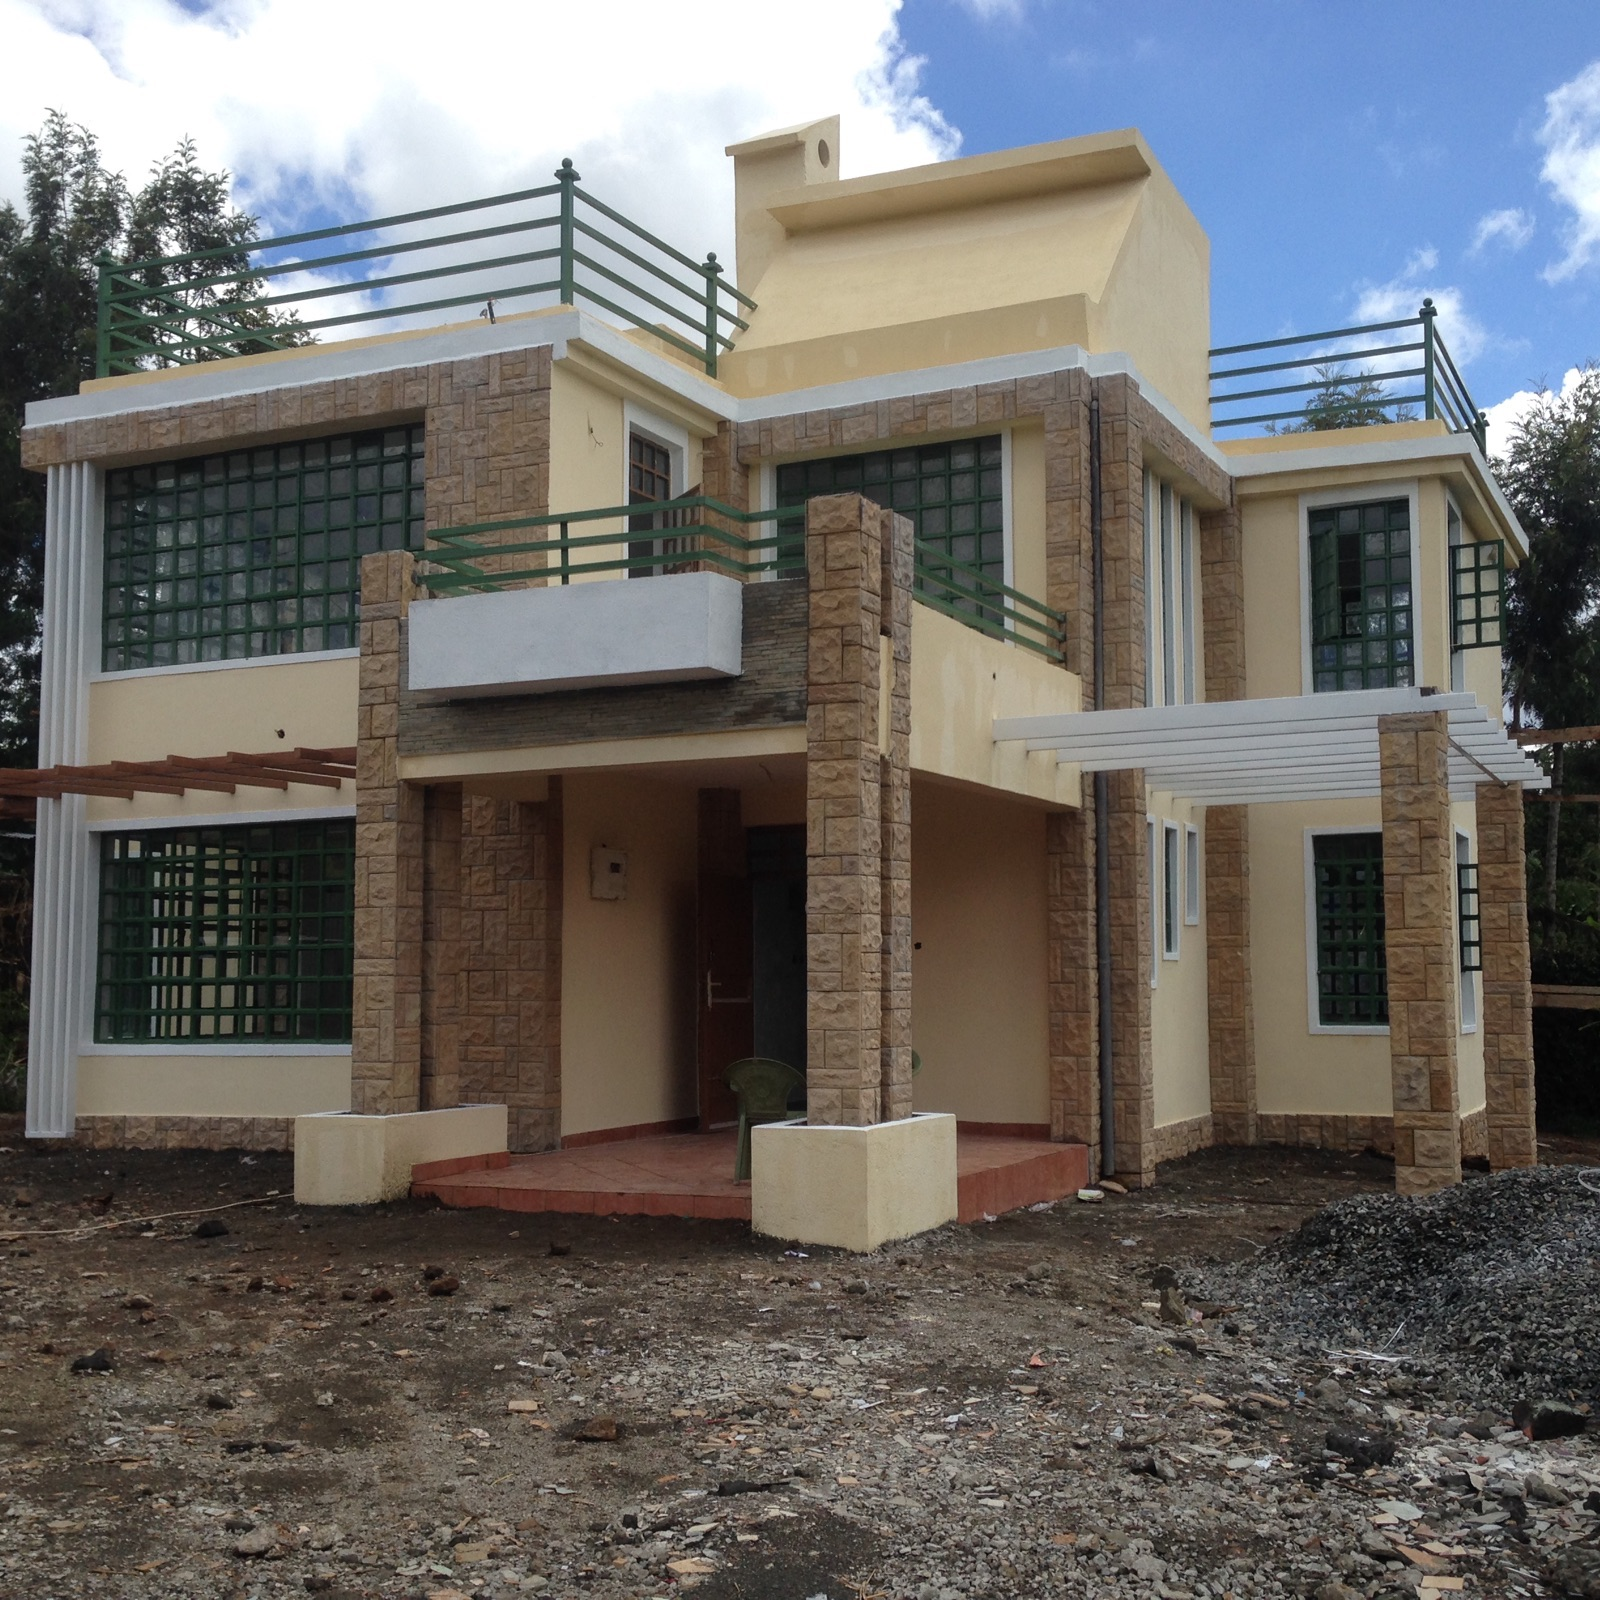 The finished house conte 4 bedroom house plan adroit for House designs in kenya photos